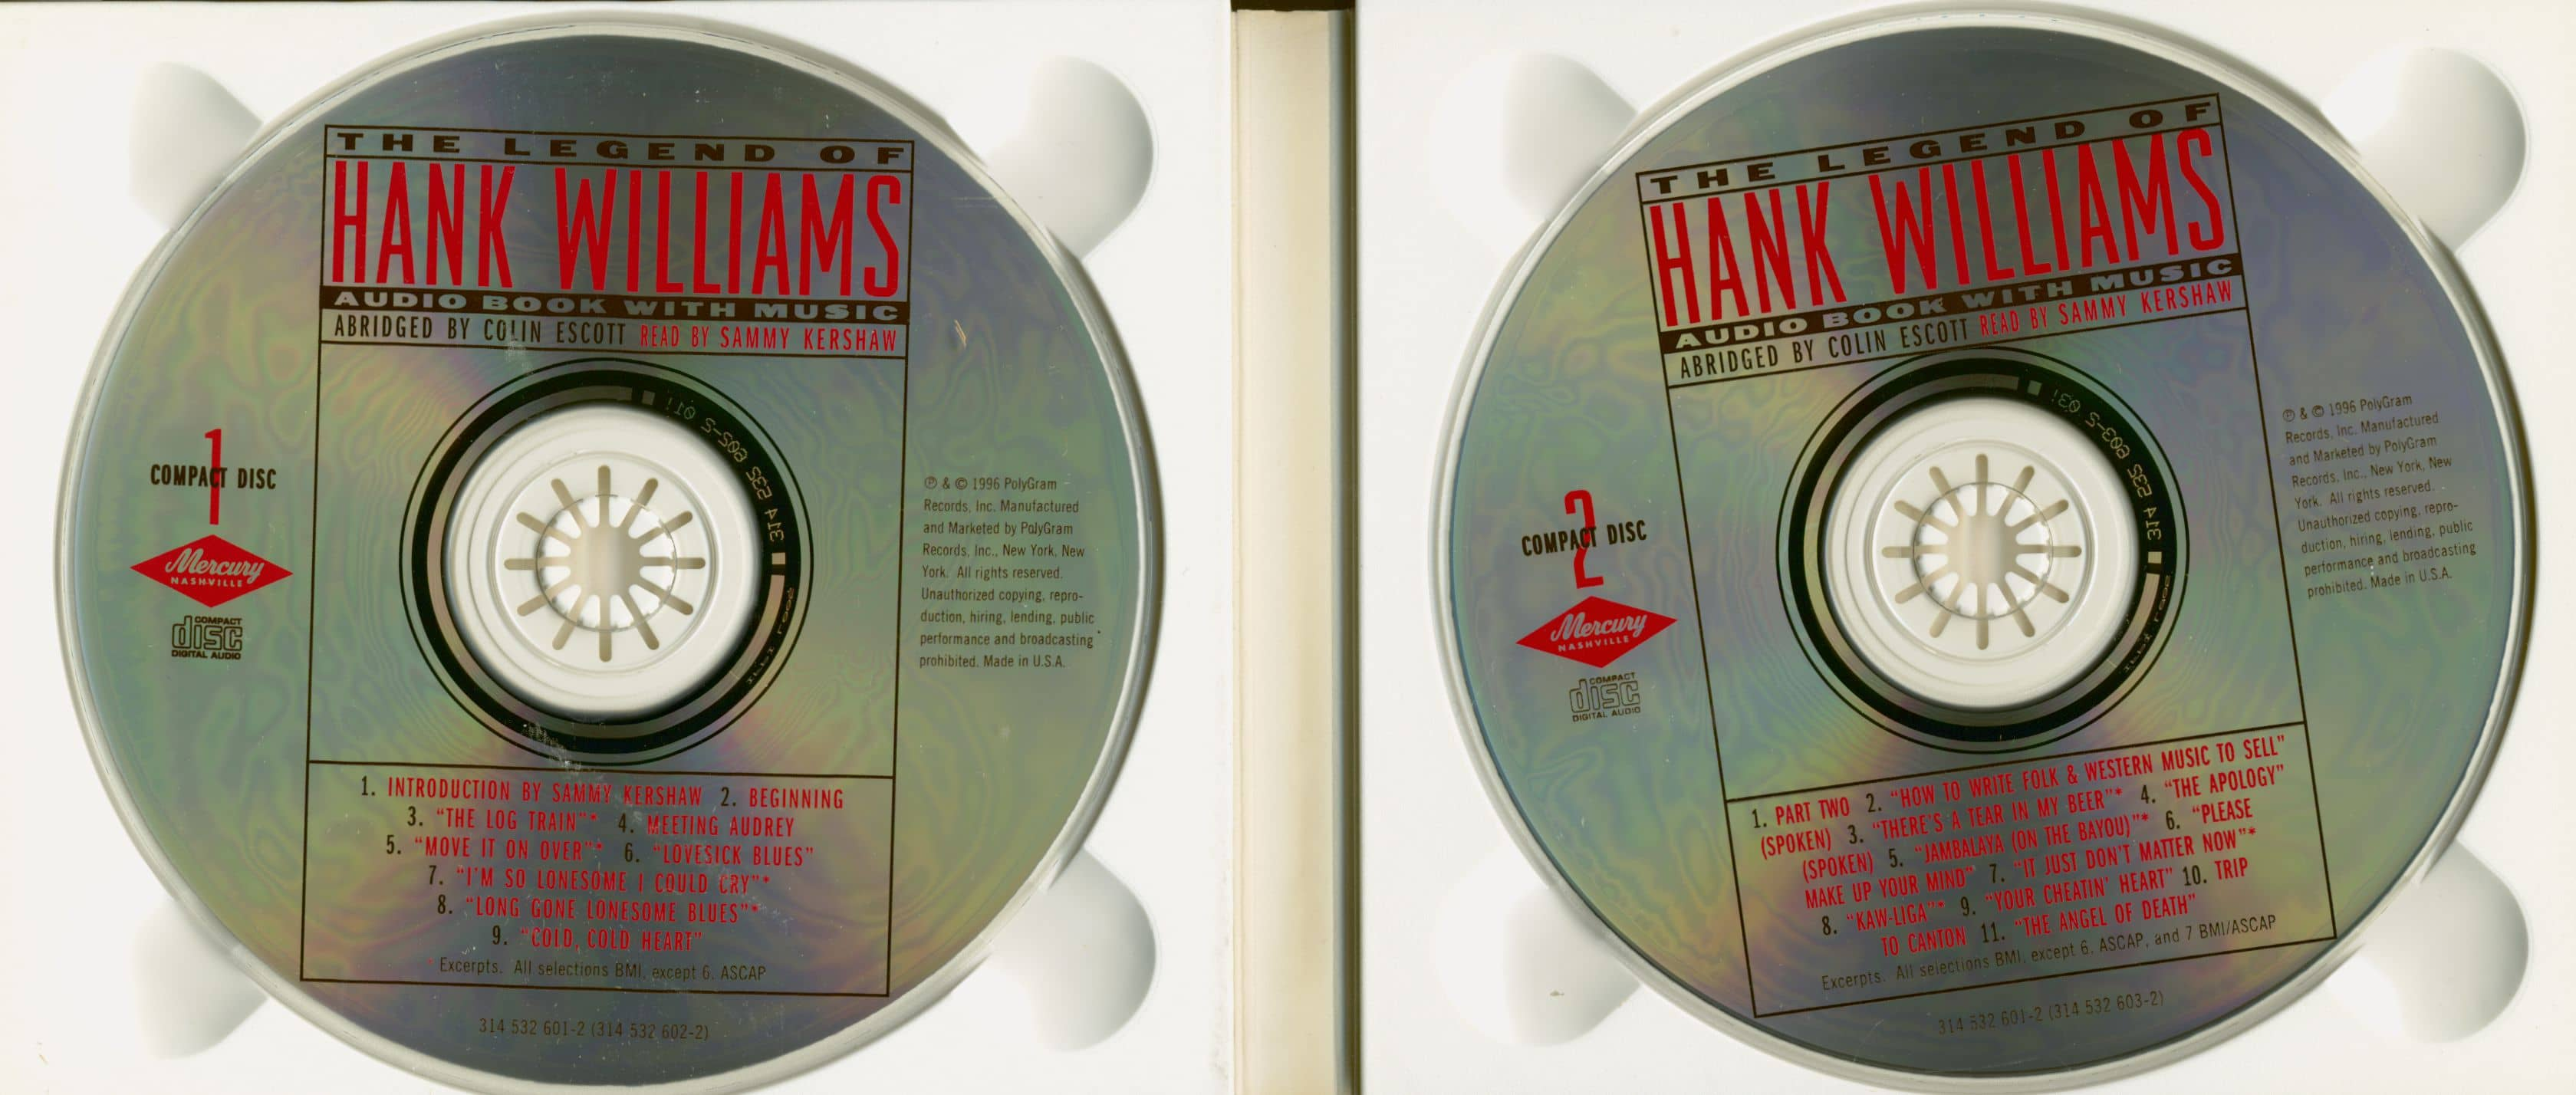 Hank Williams The Legend Of Hank Williams - Audio Book with Music (2-CD)